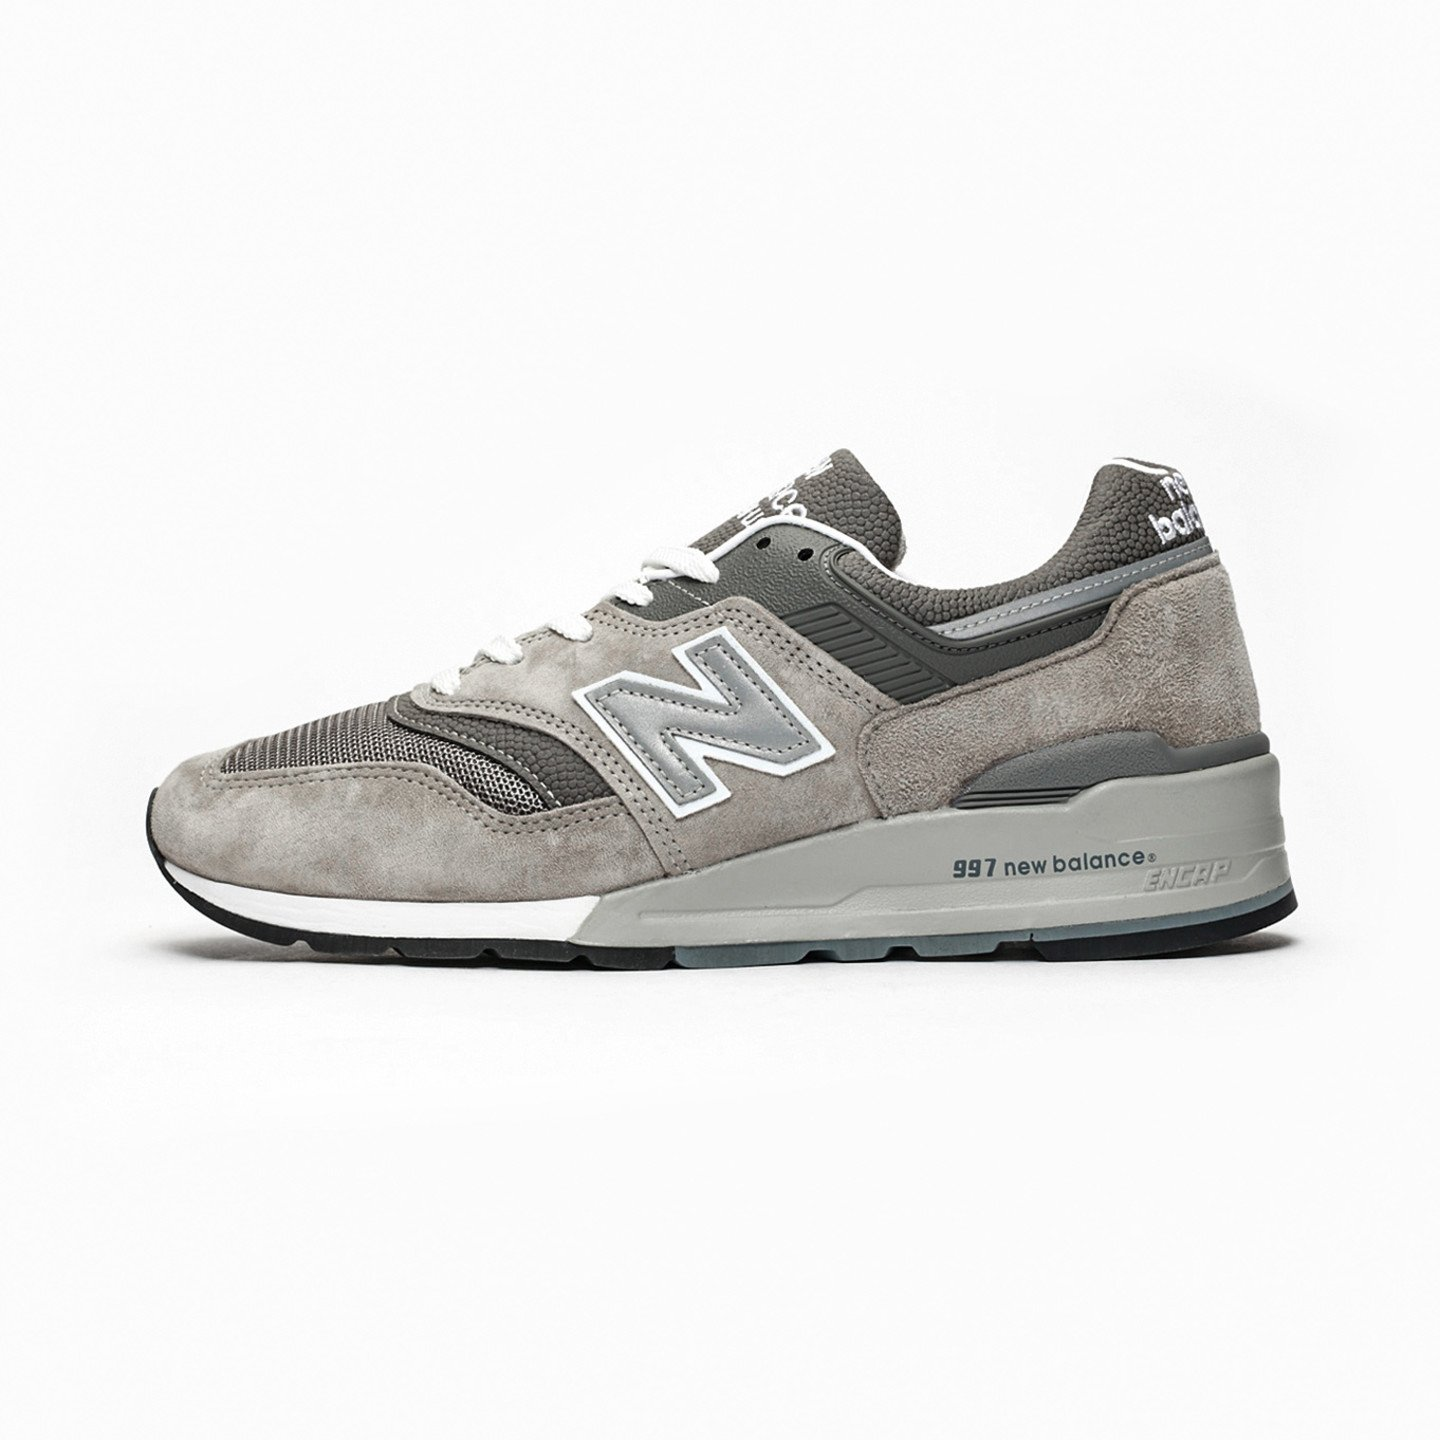 New Balance M997 - Made in USA Grey / White M997GY